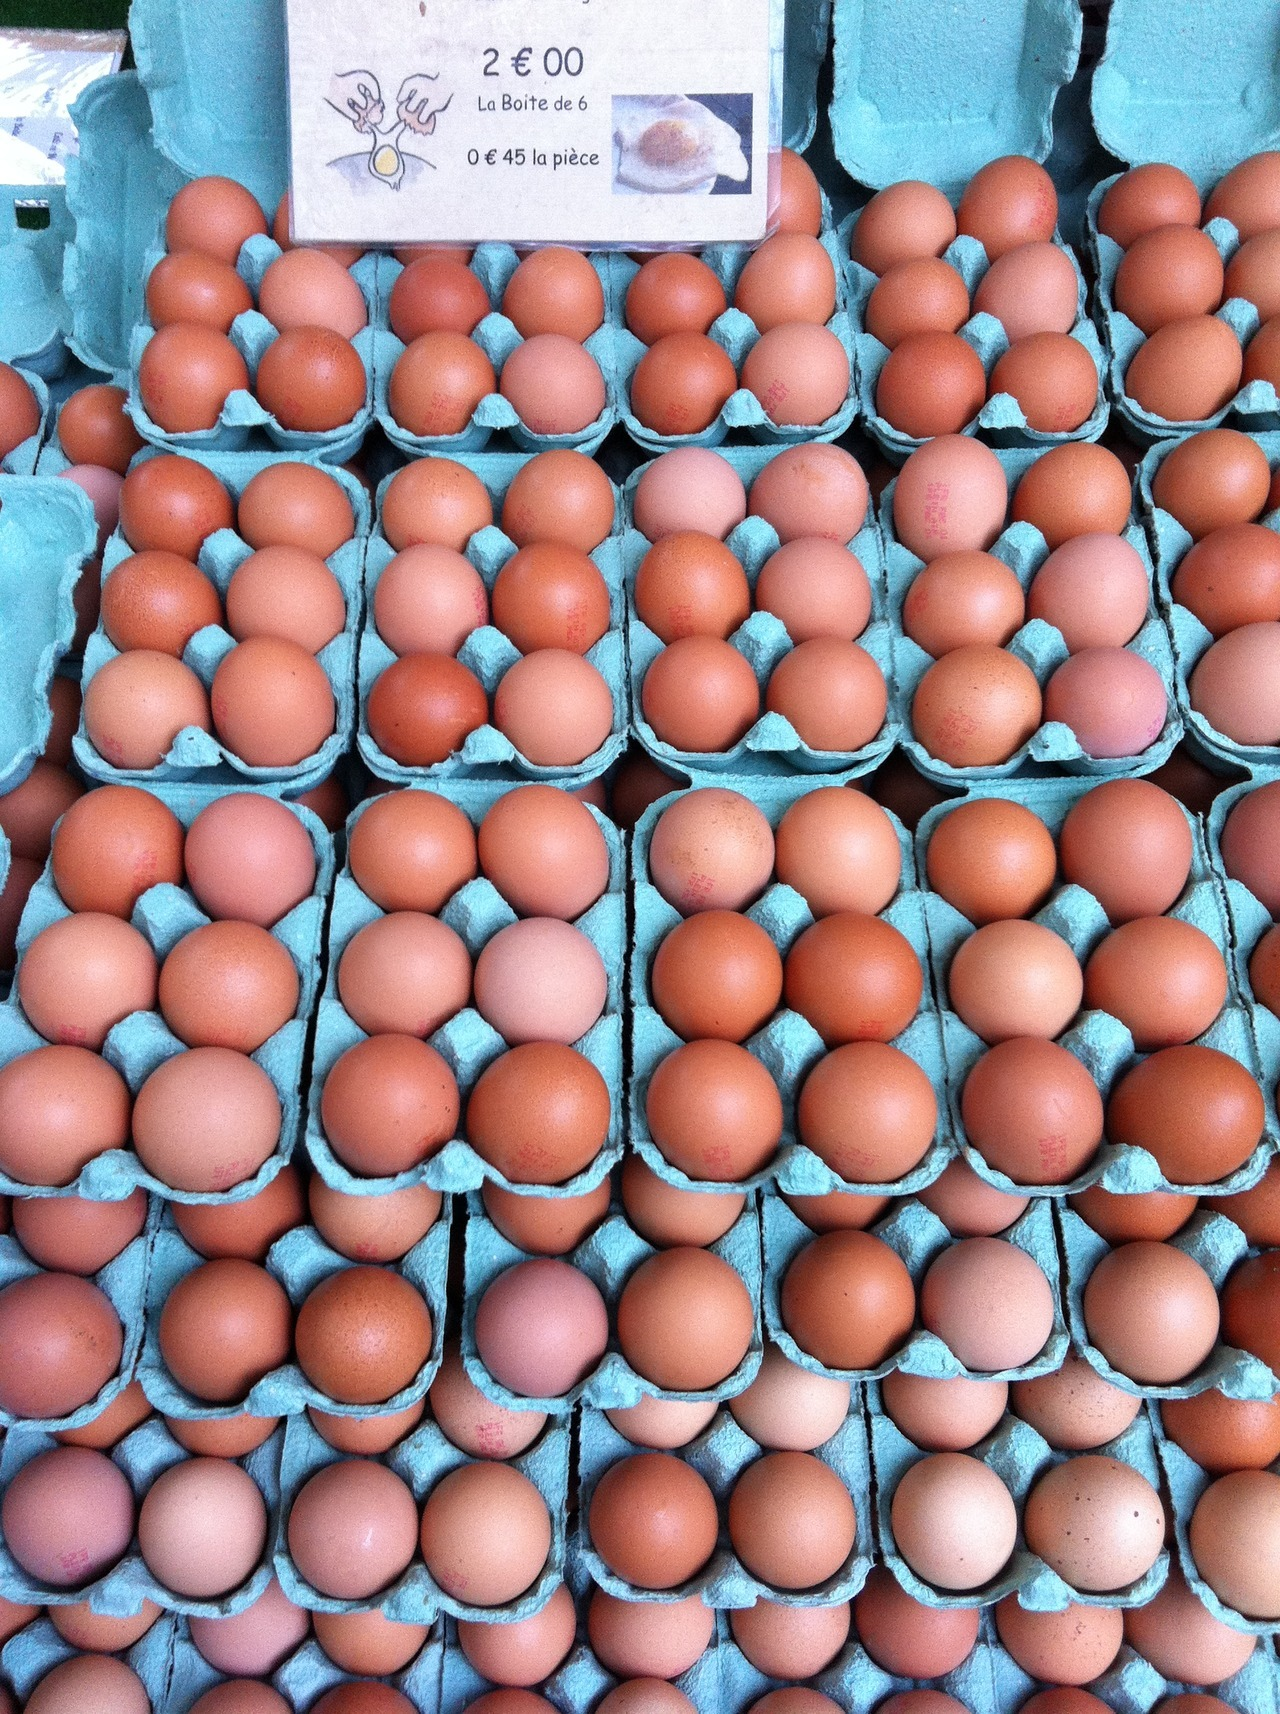 elevenpixels:  Parisian eggs at the sunday market